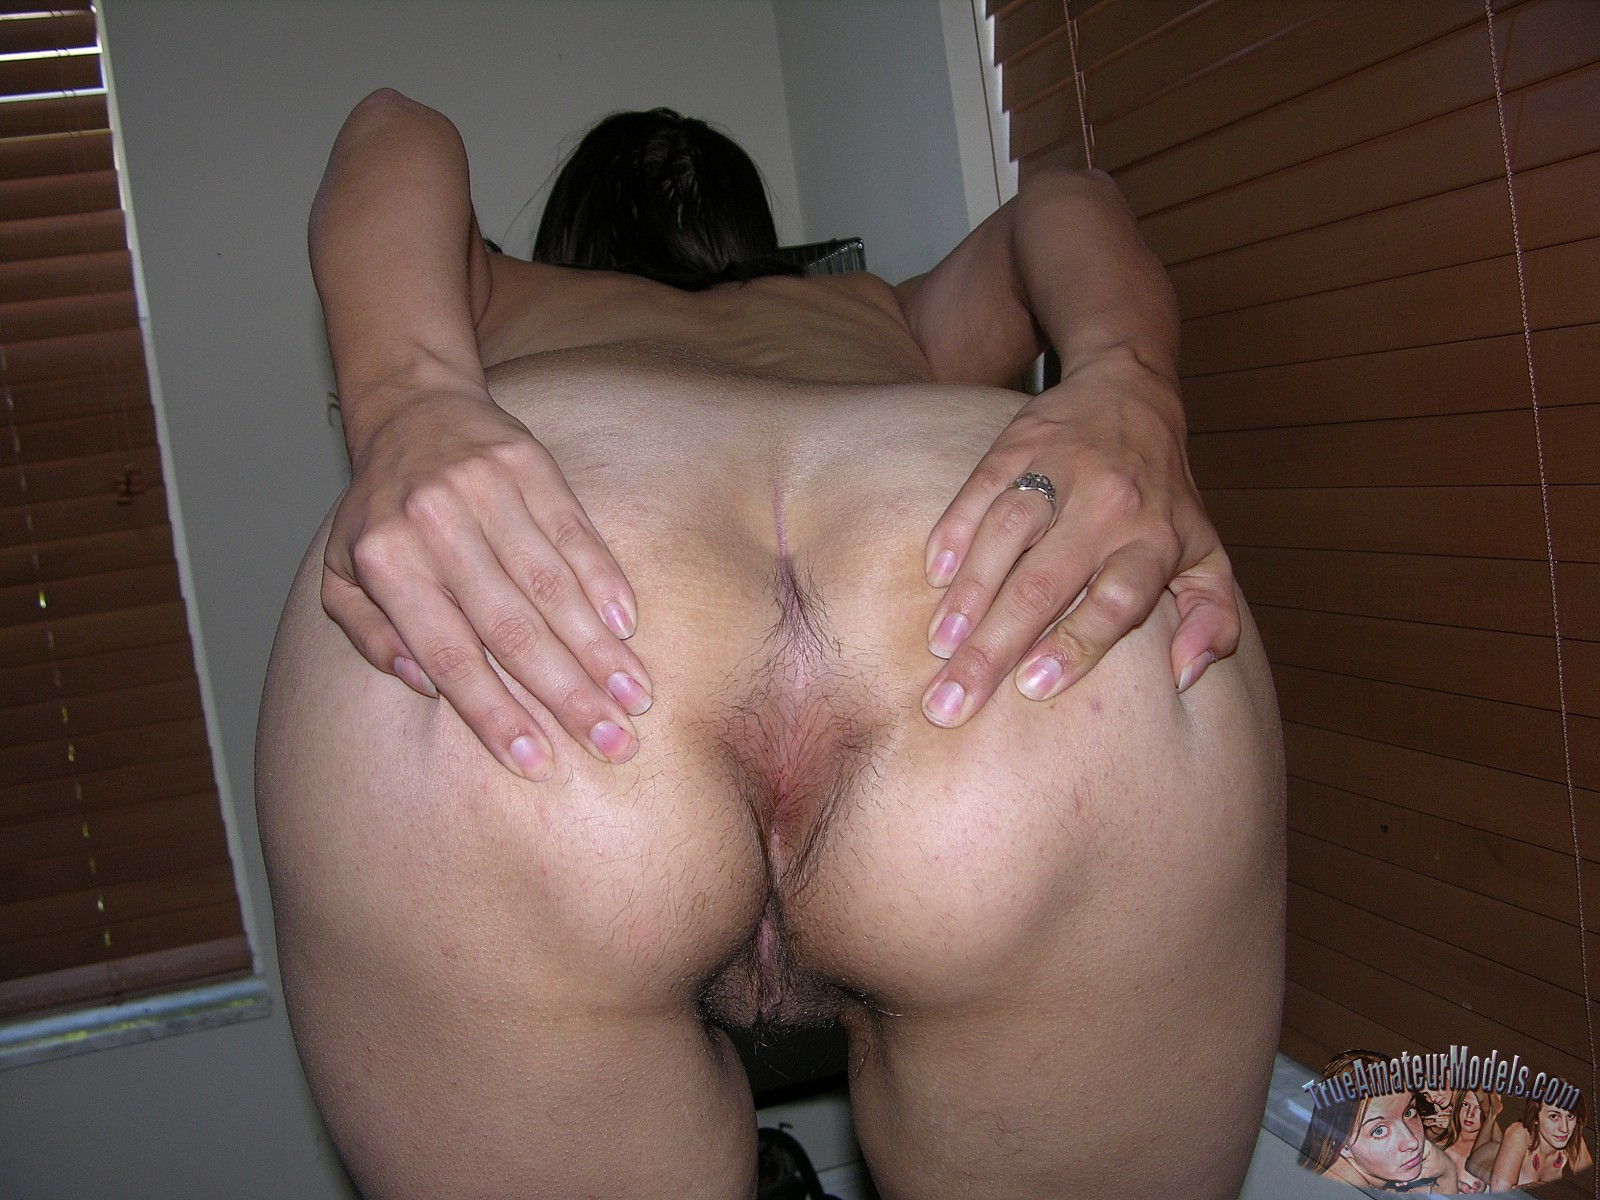 She girls hairy butt holes